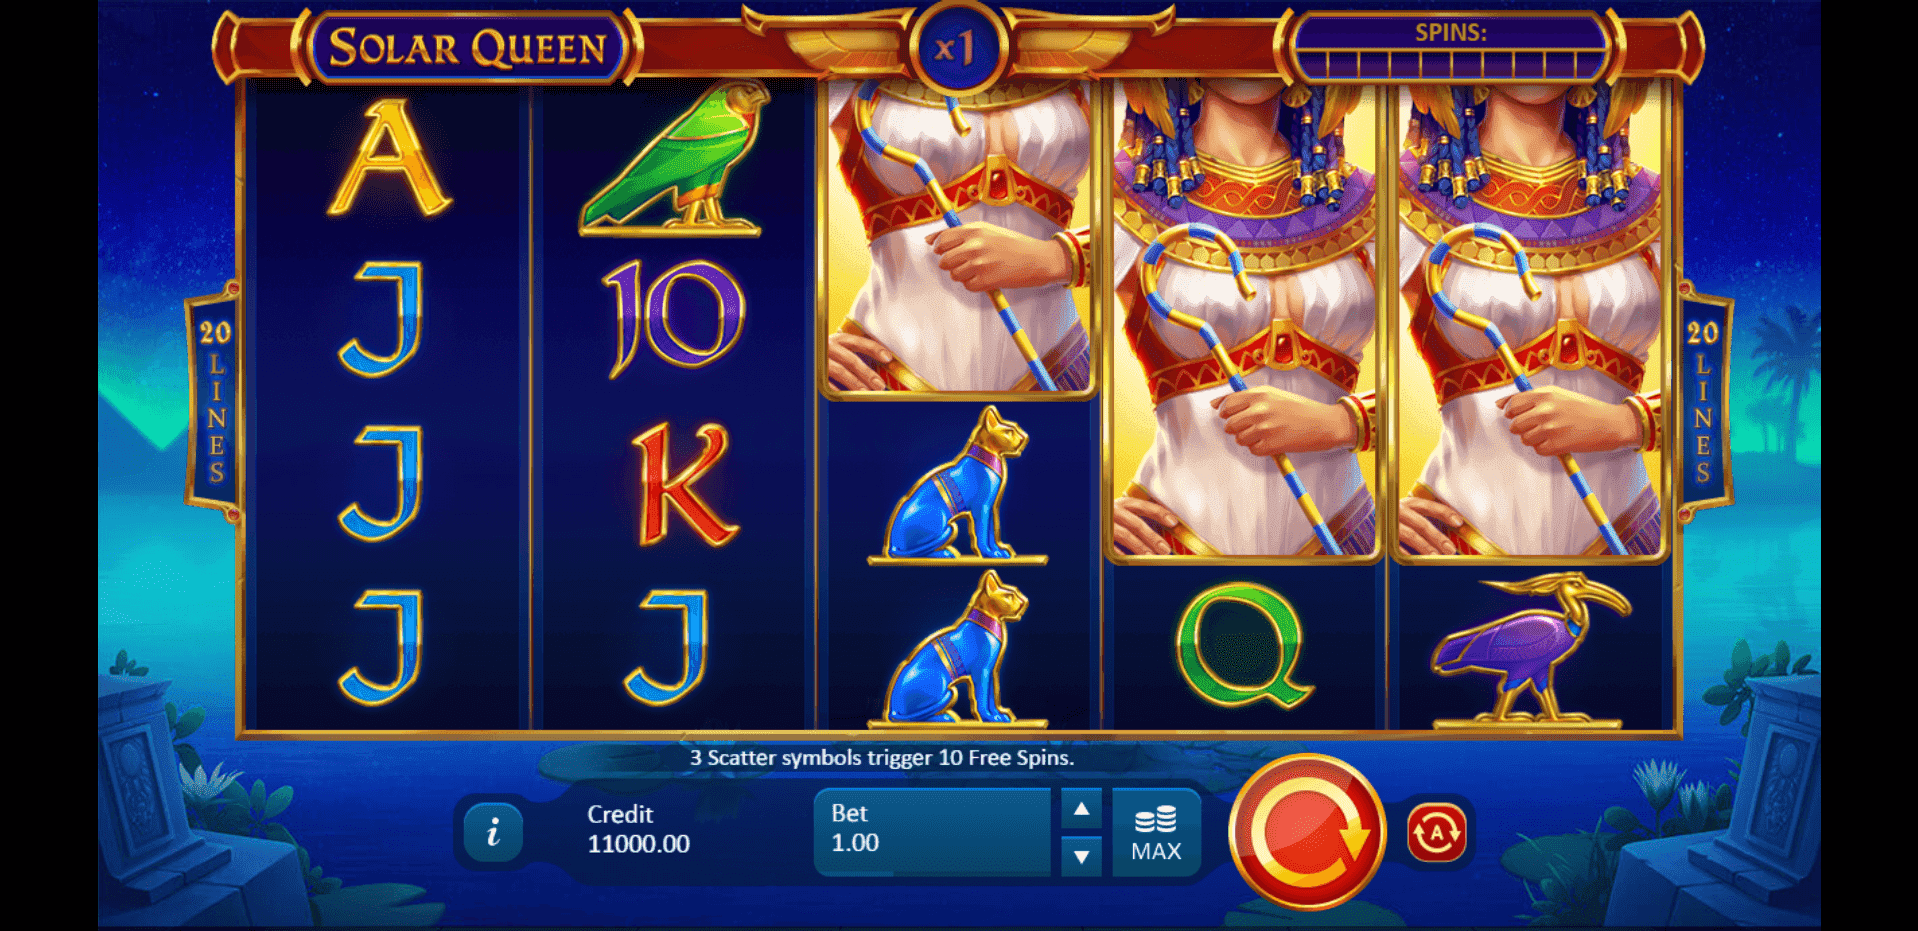 Solar Queen slot machine screenshot